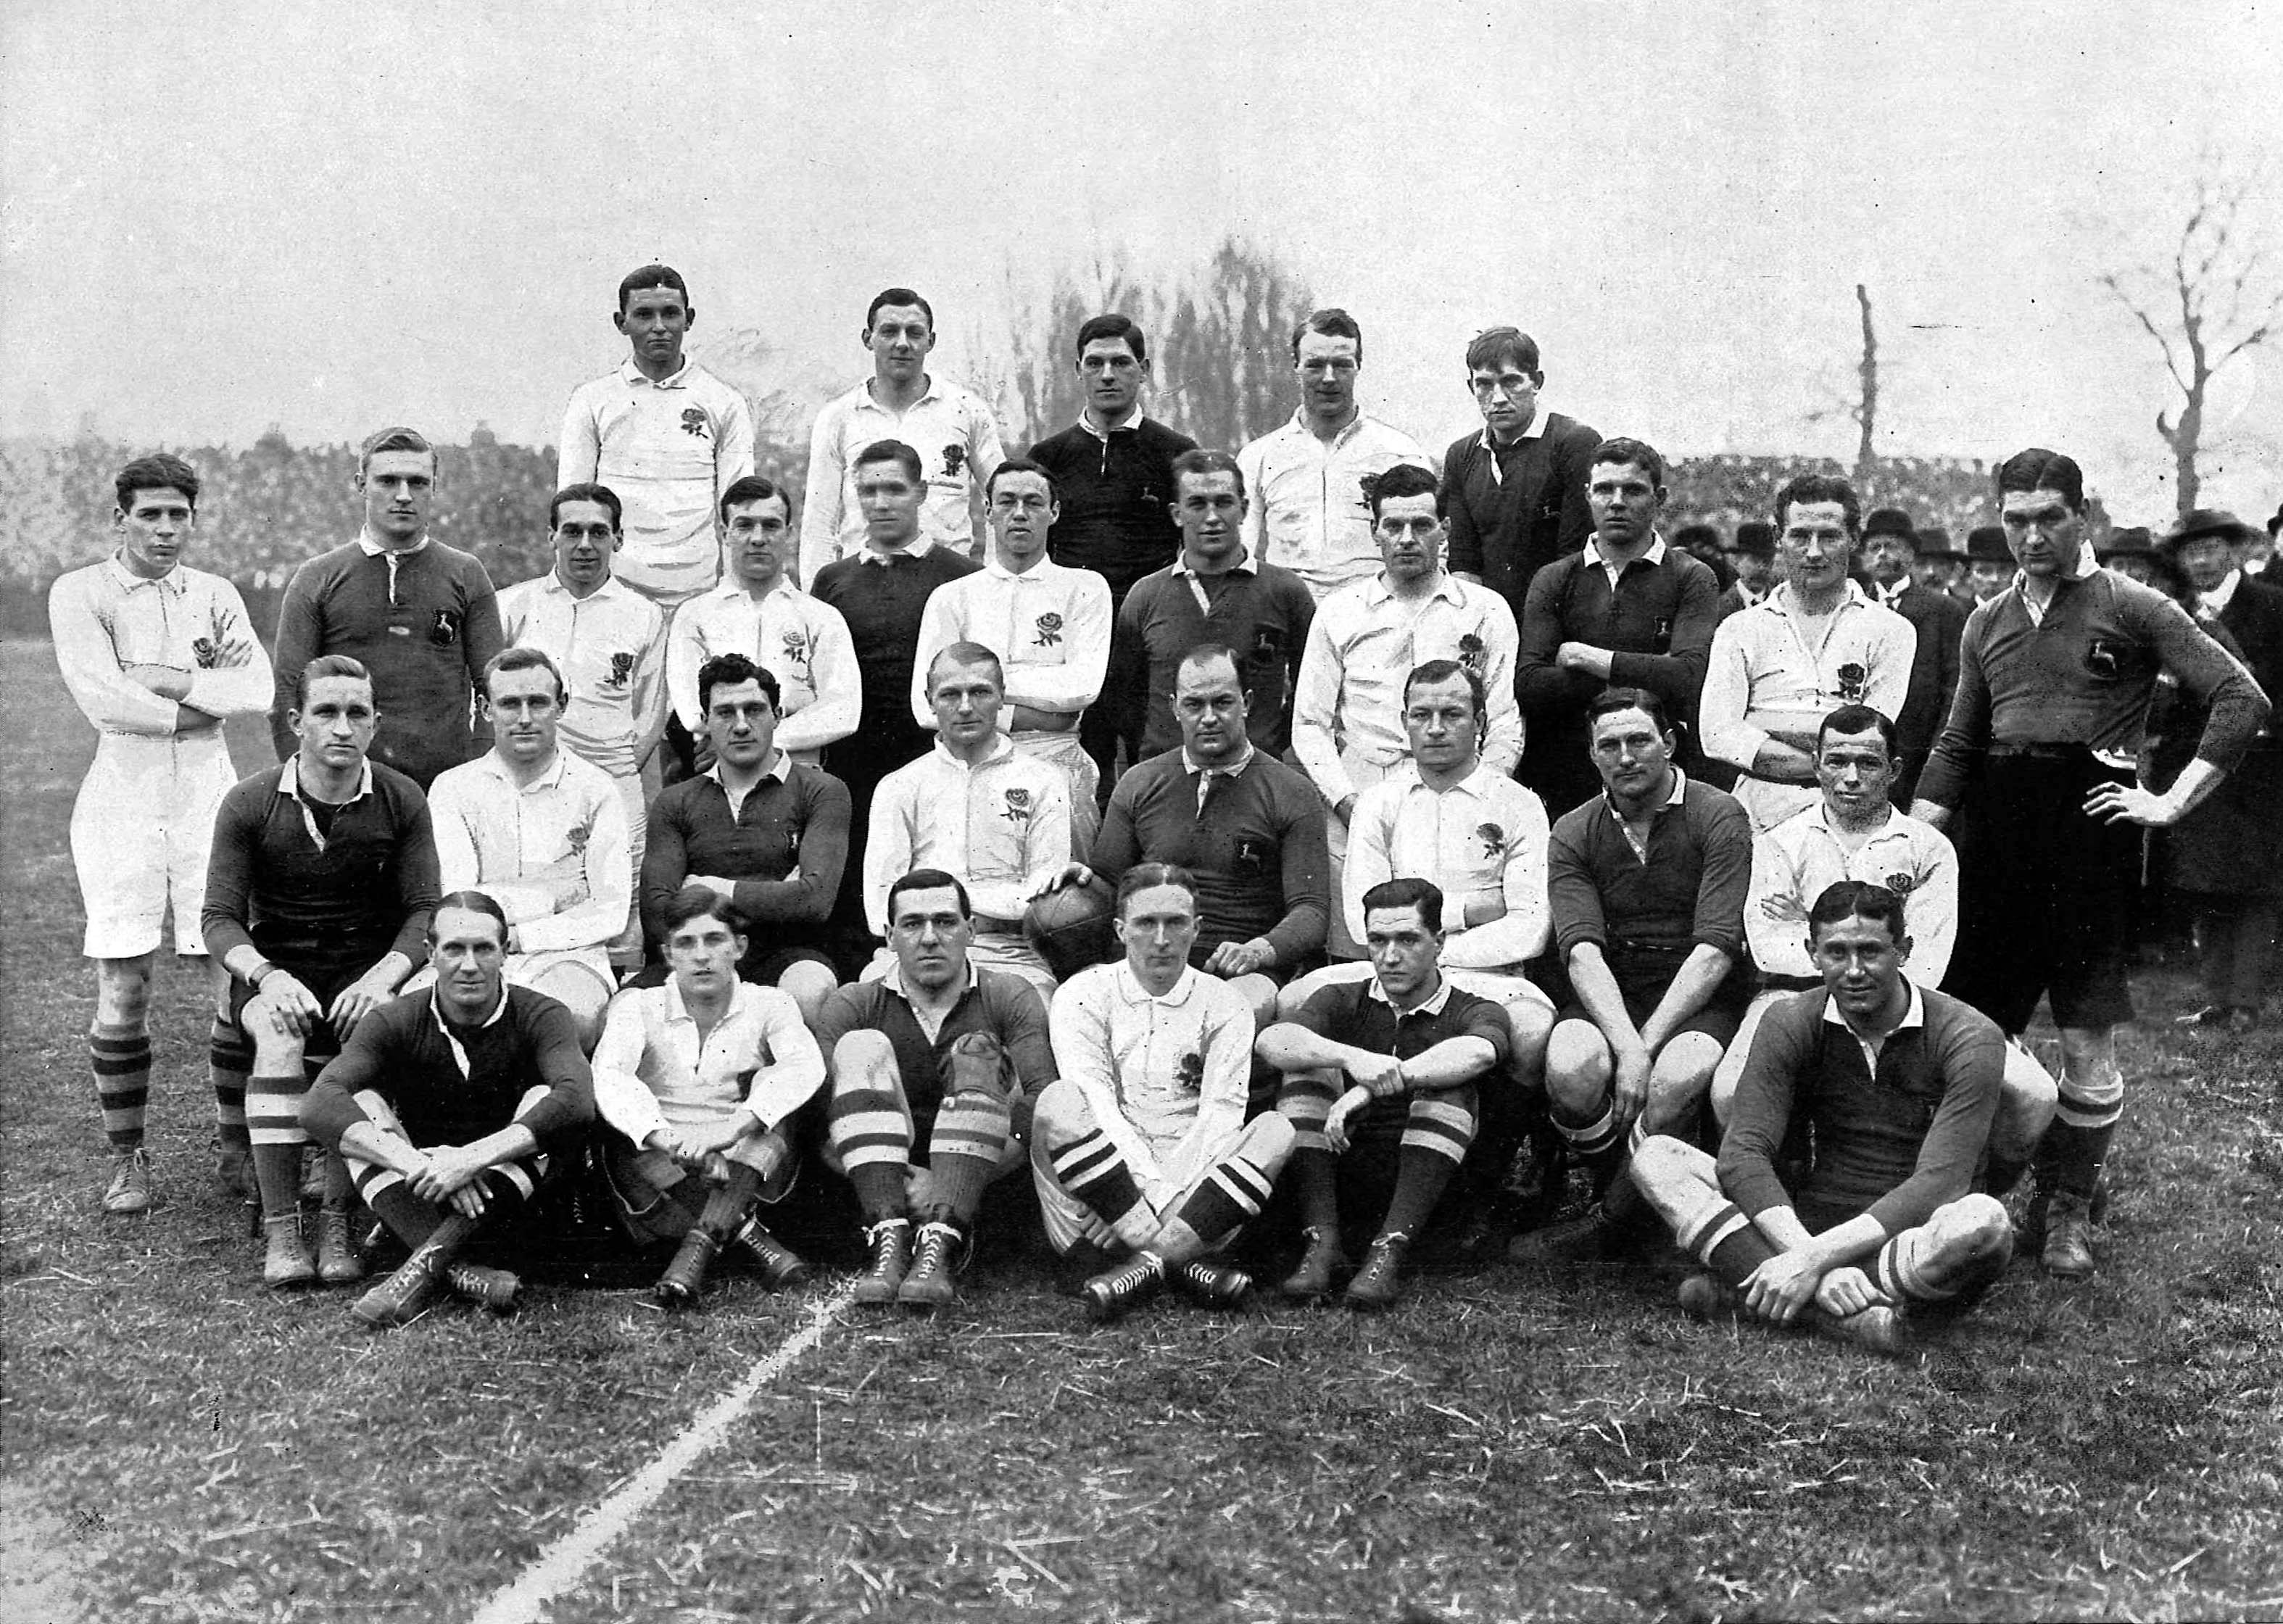 File:England and South Africa rugby union teams, 1913.jpg